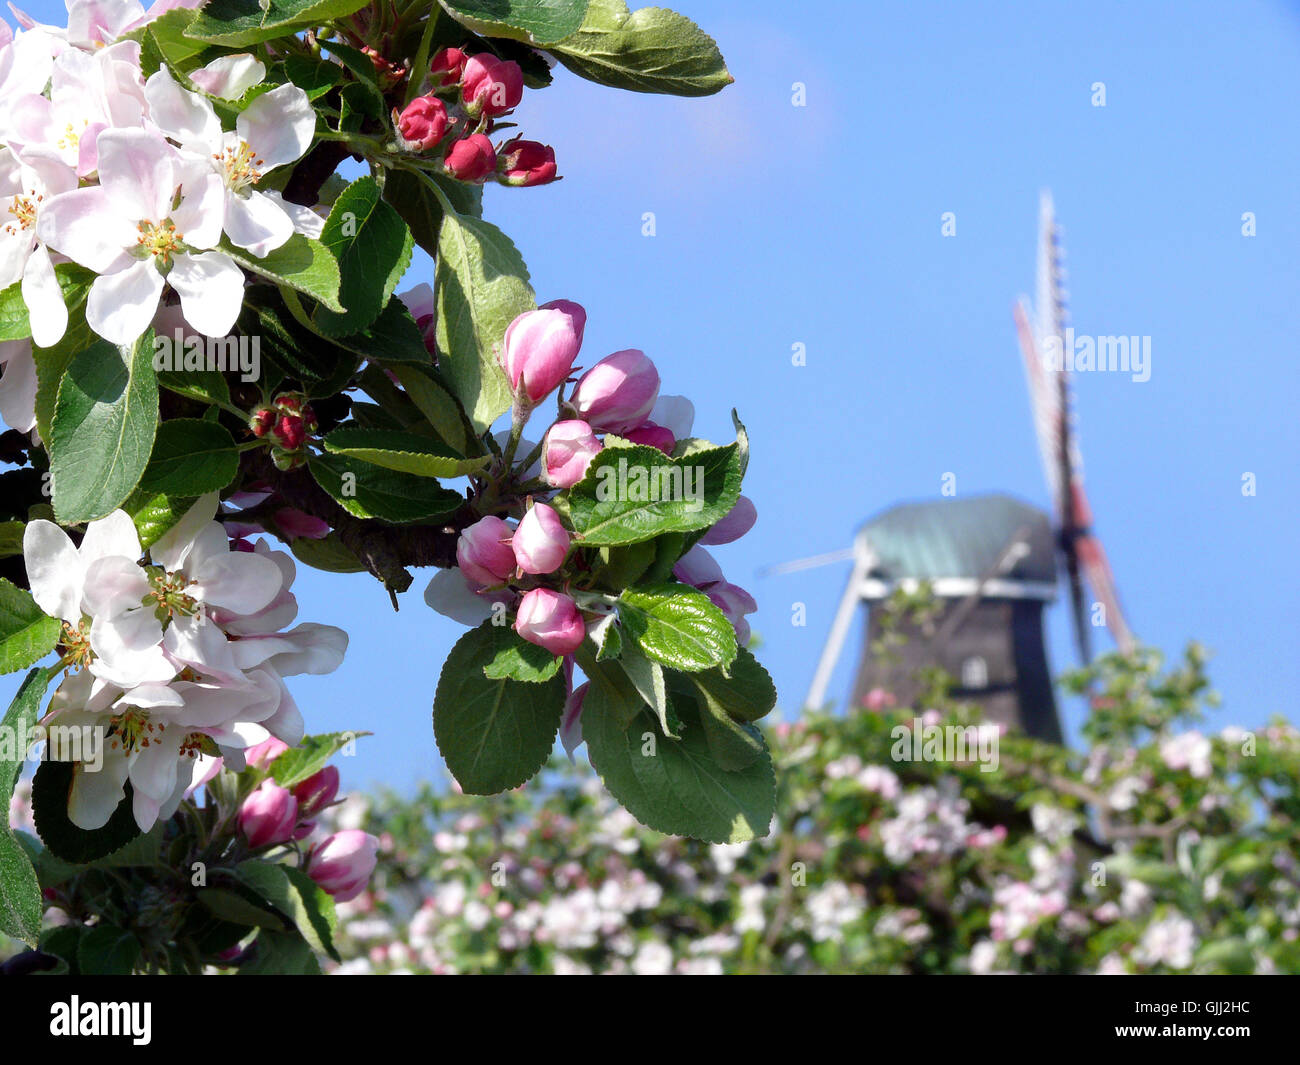 mill Northern Germany apple blossom - Stock Image